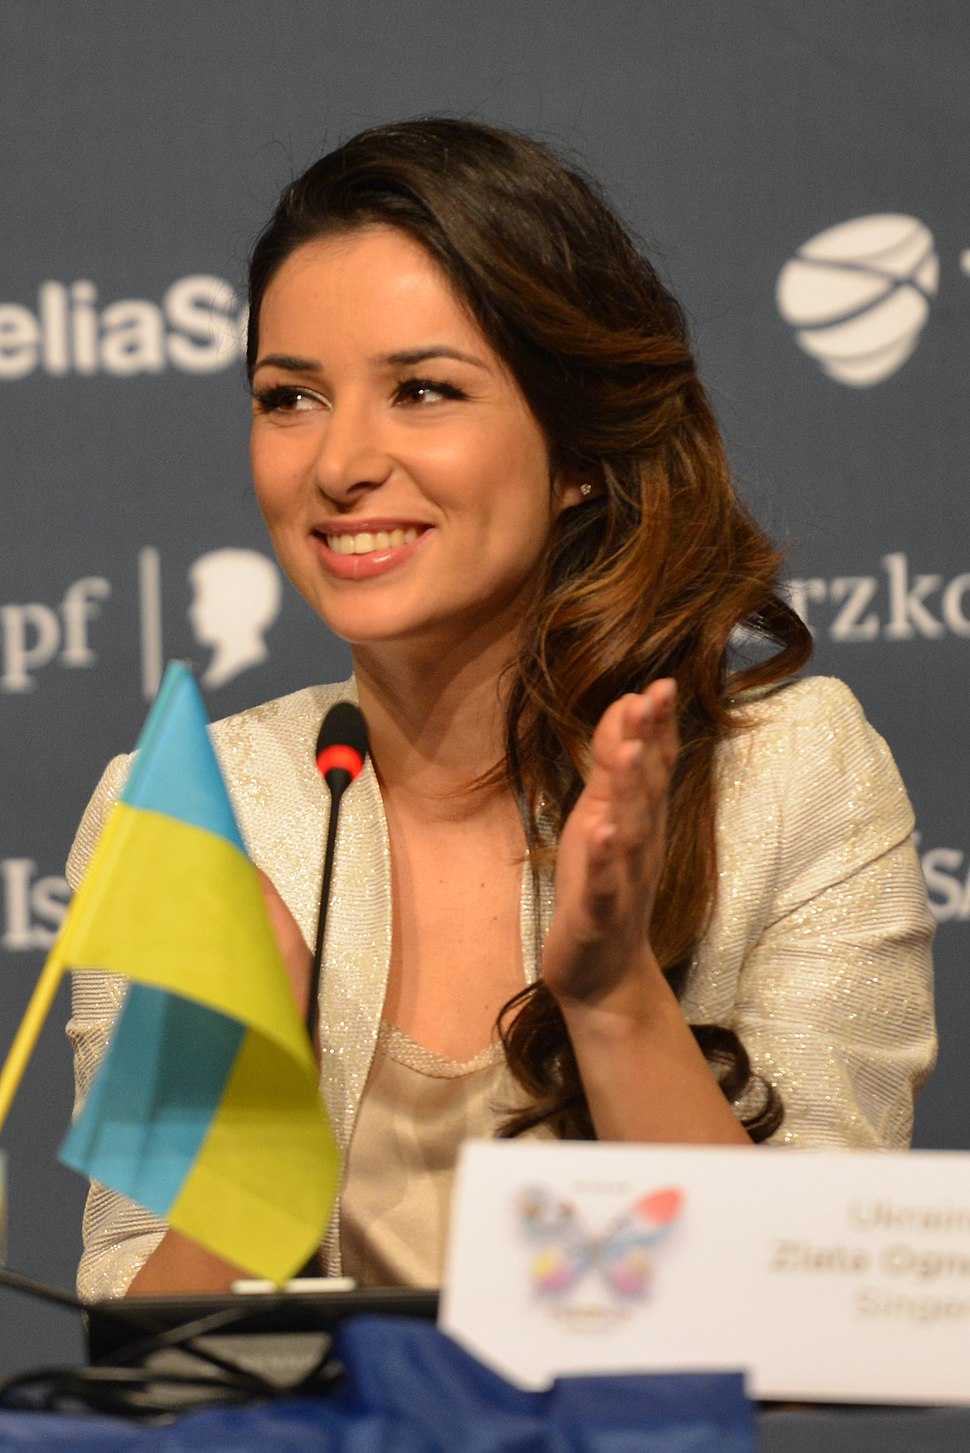 Zlata Ohnevytj, ESC2013 press conference 05